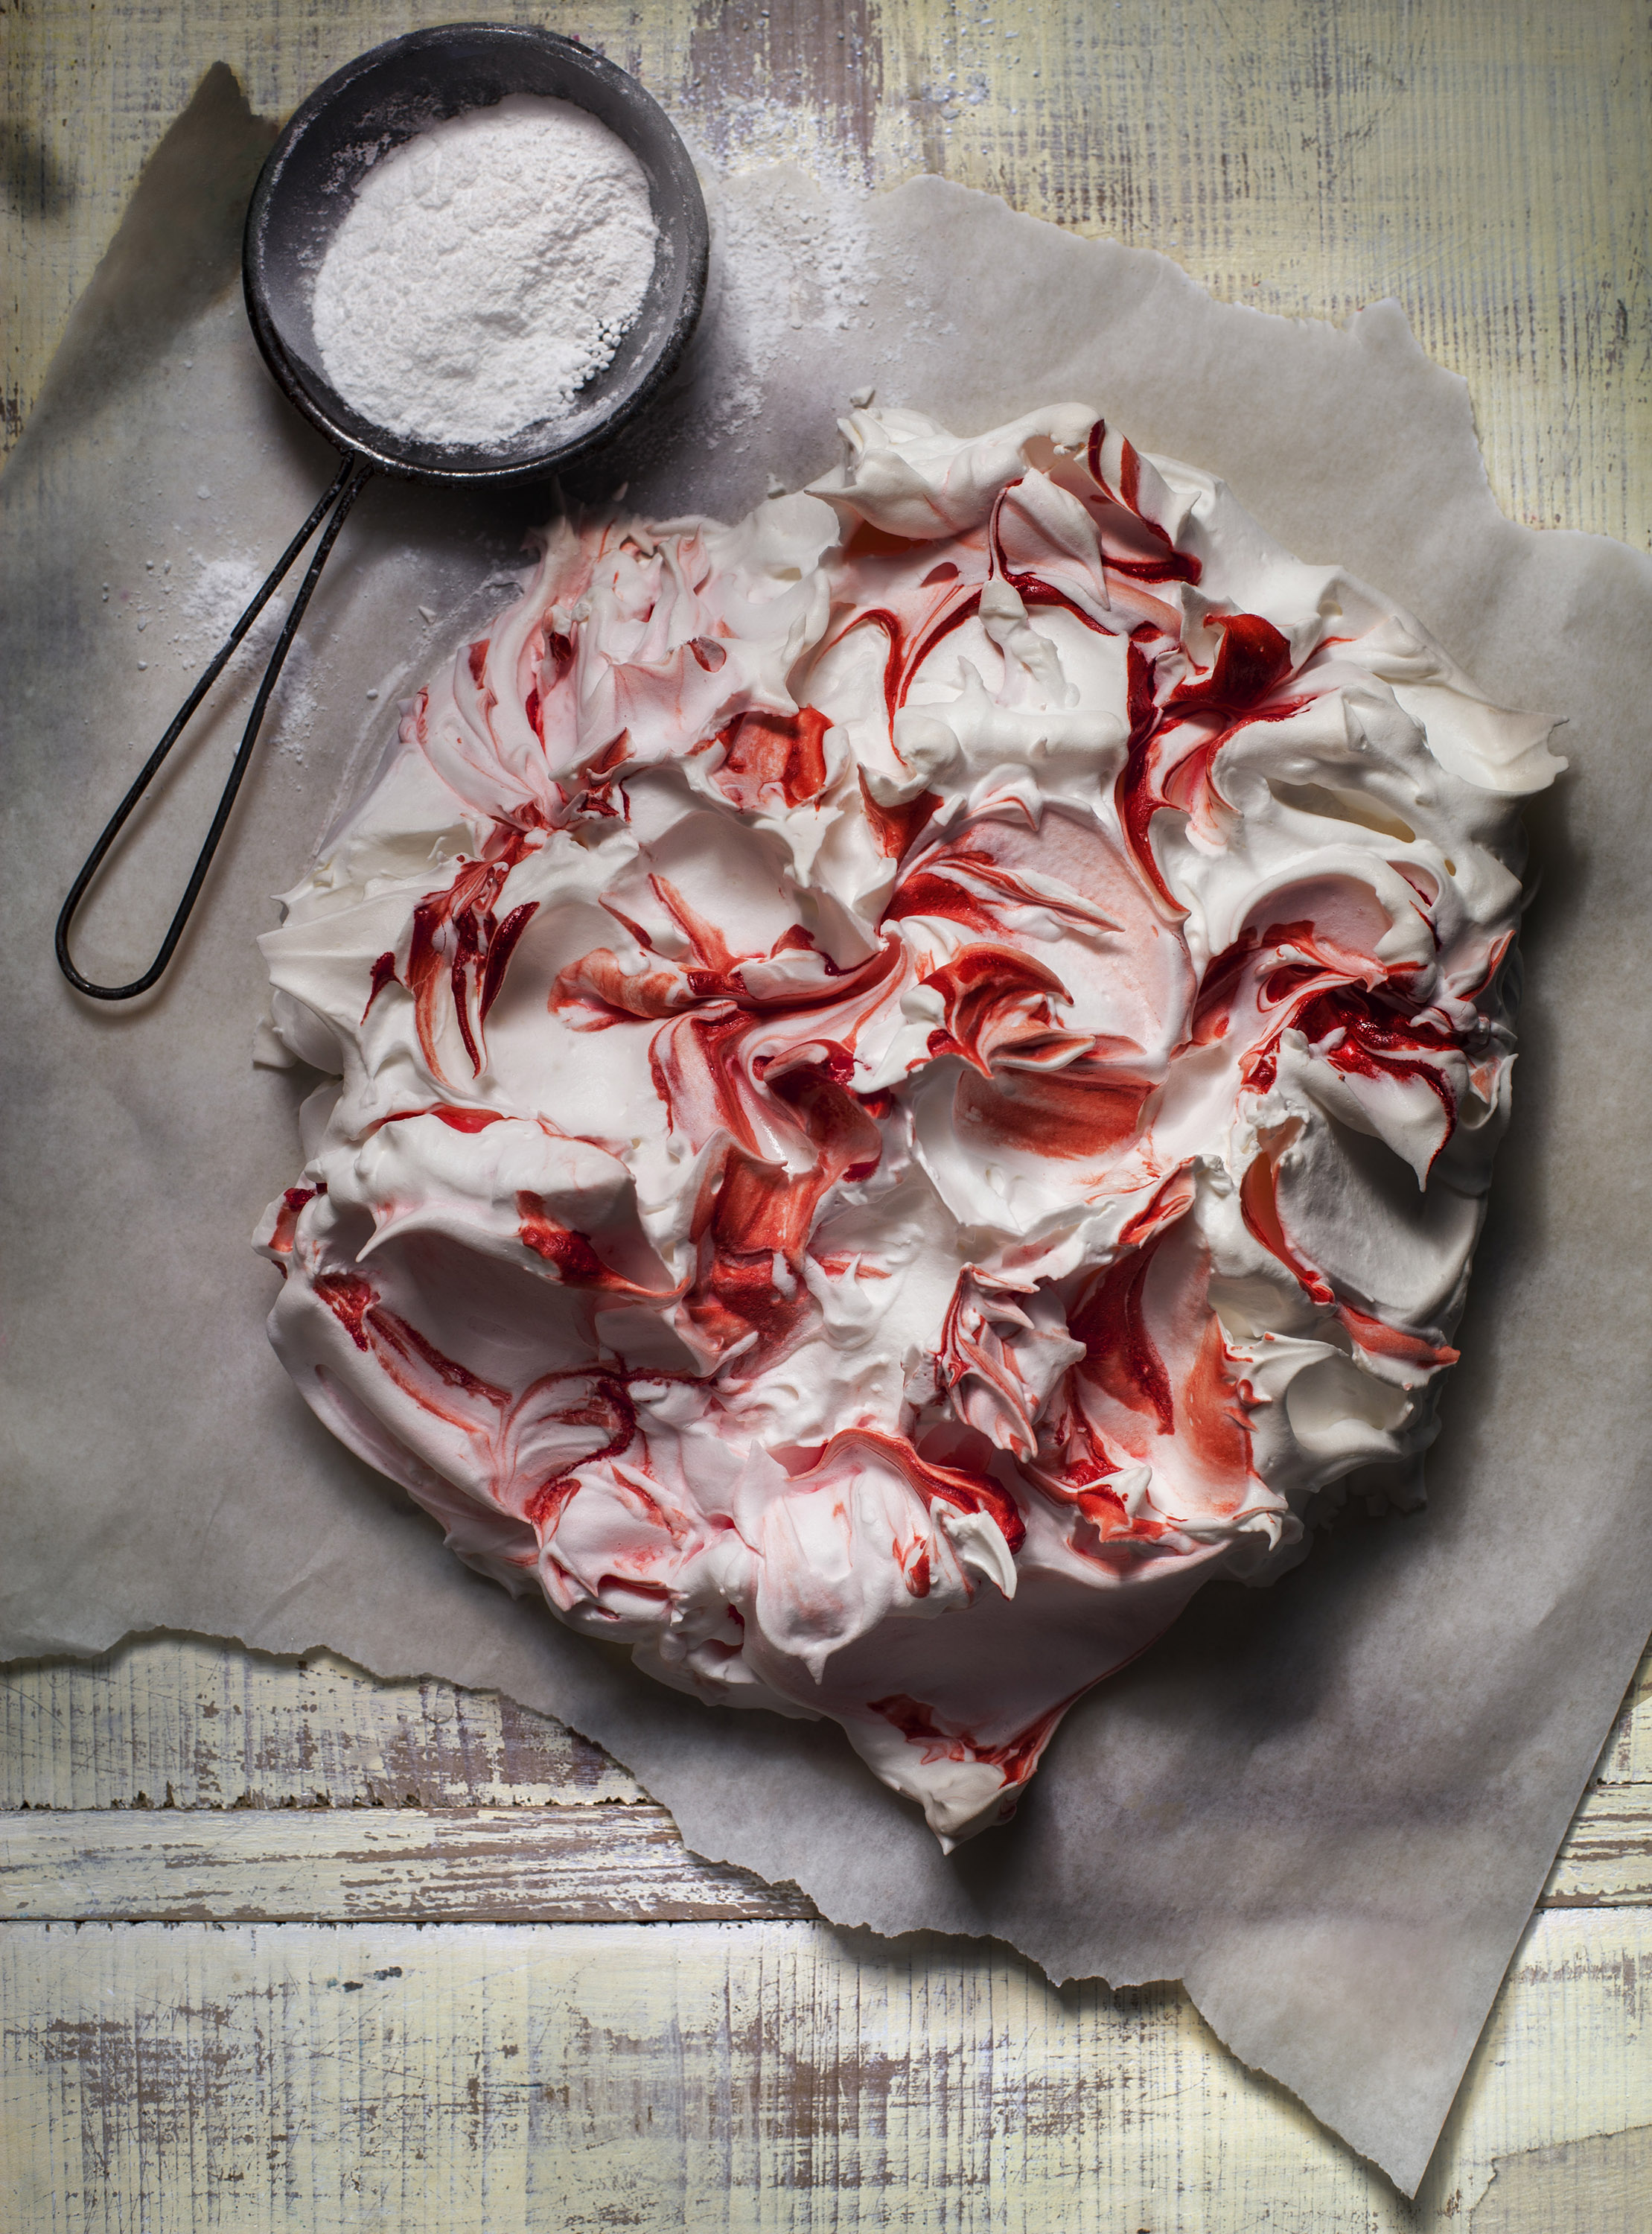 Julia Azzarello, professional food stylist, Style Department, meringue